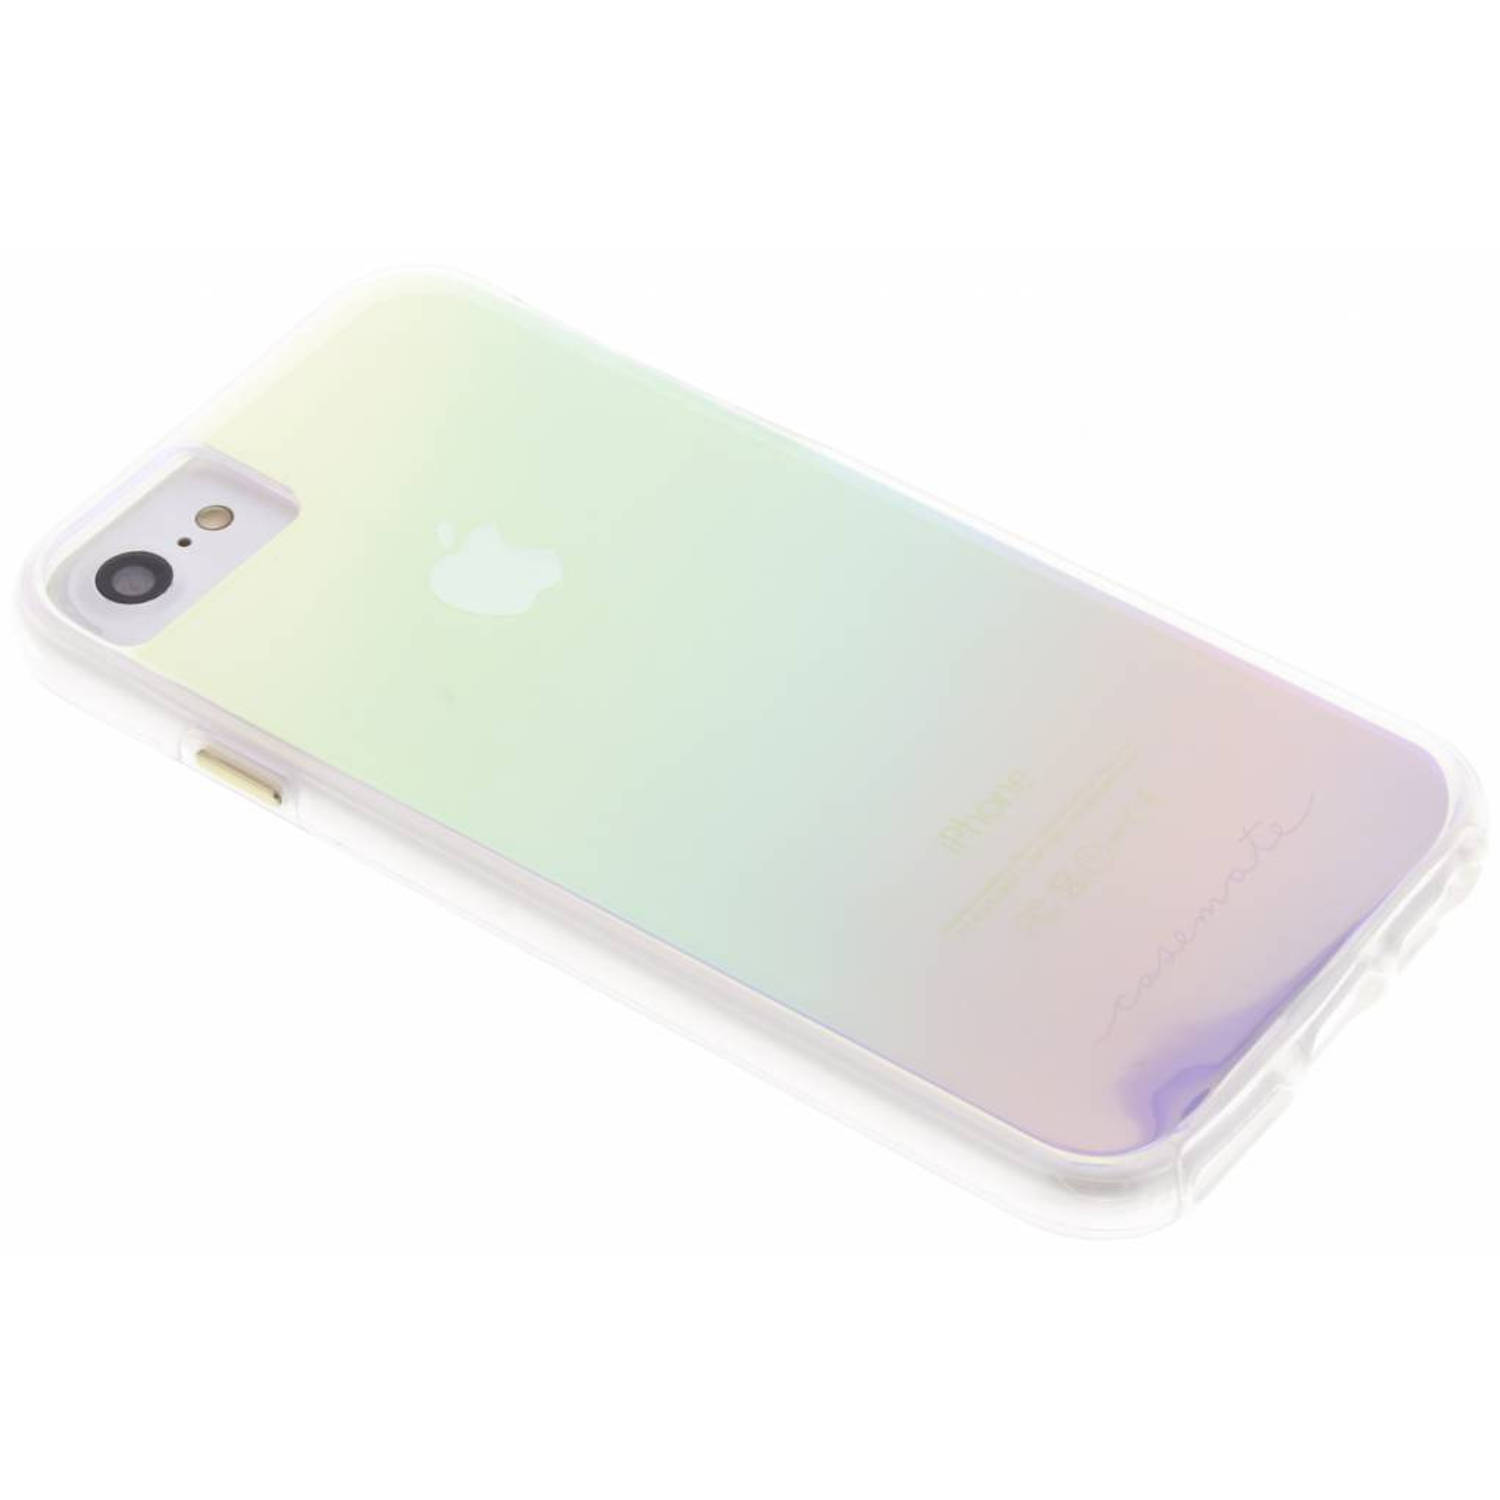 Iridescent Naked Tough Case voor de iPhone 8 / 7 / 6s / 6